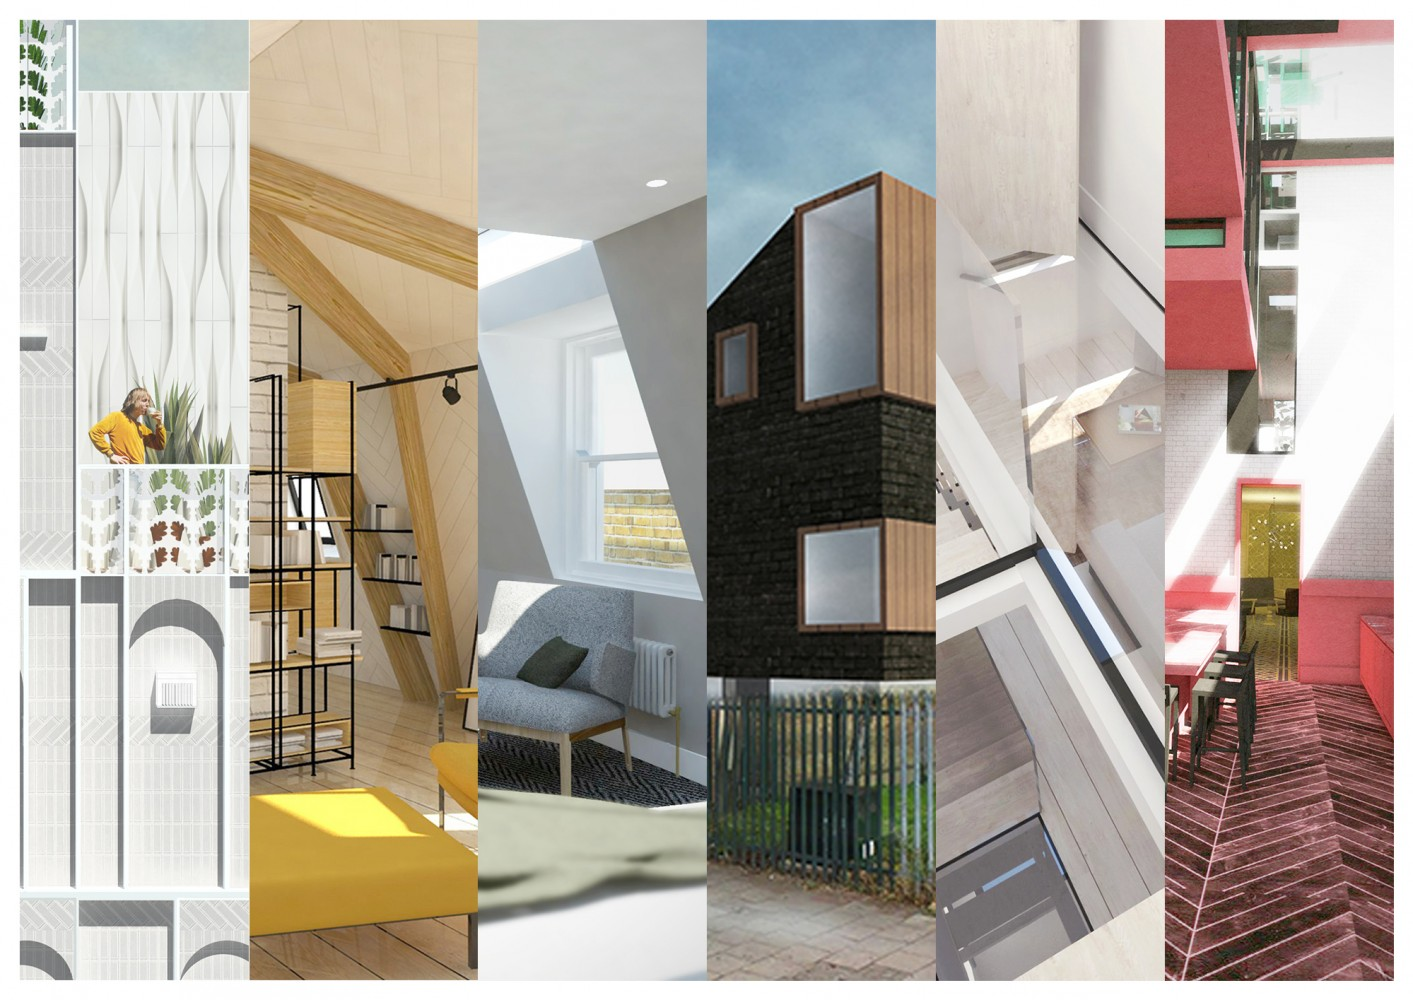 2018 Peter Morris Architects